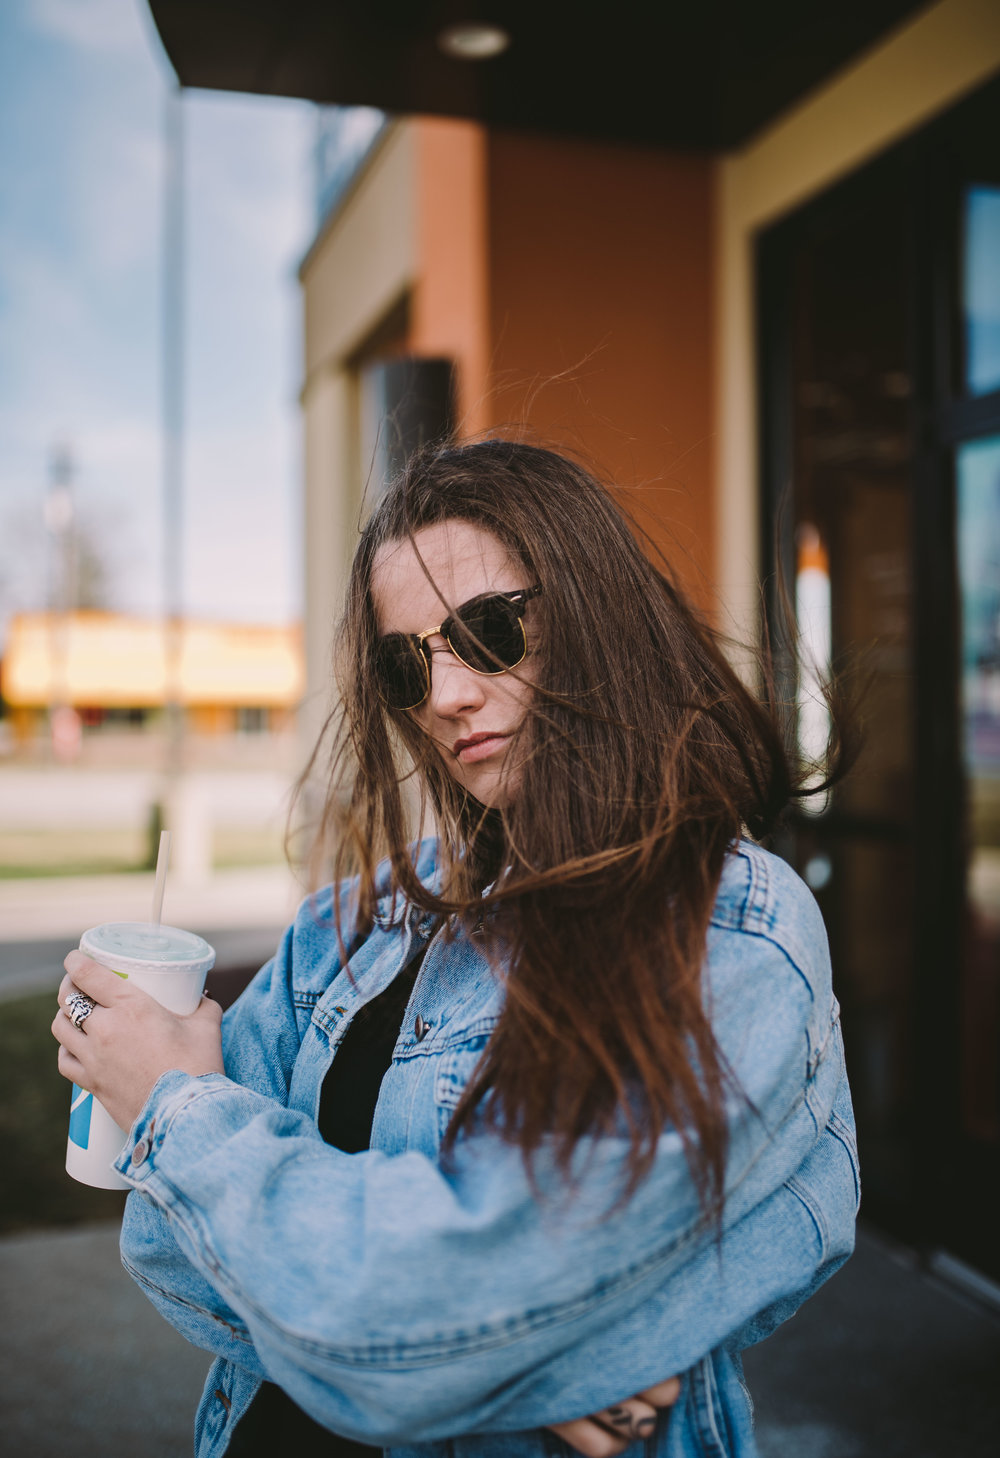 FastFoodPhotoChallenge_KaitlinRomack_March2018_Senior Photography In Tempe_ArizonaPortraitPhotographer_SamanthaRosePhotography_final_013.JPG